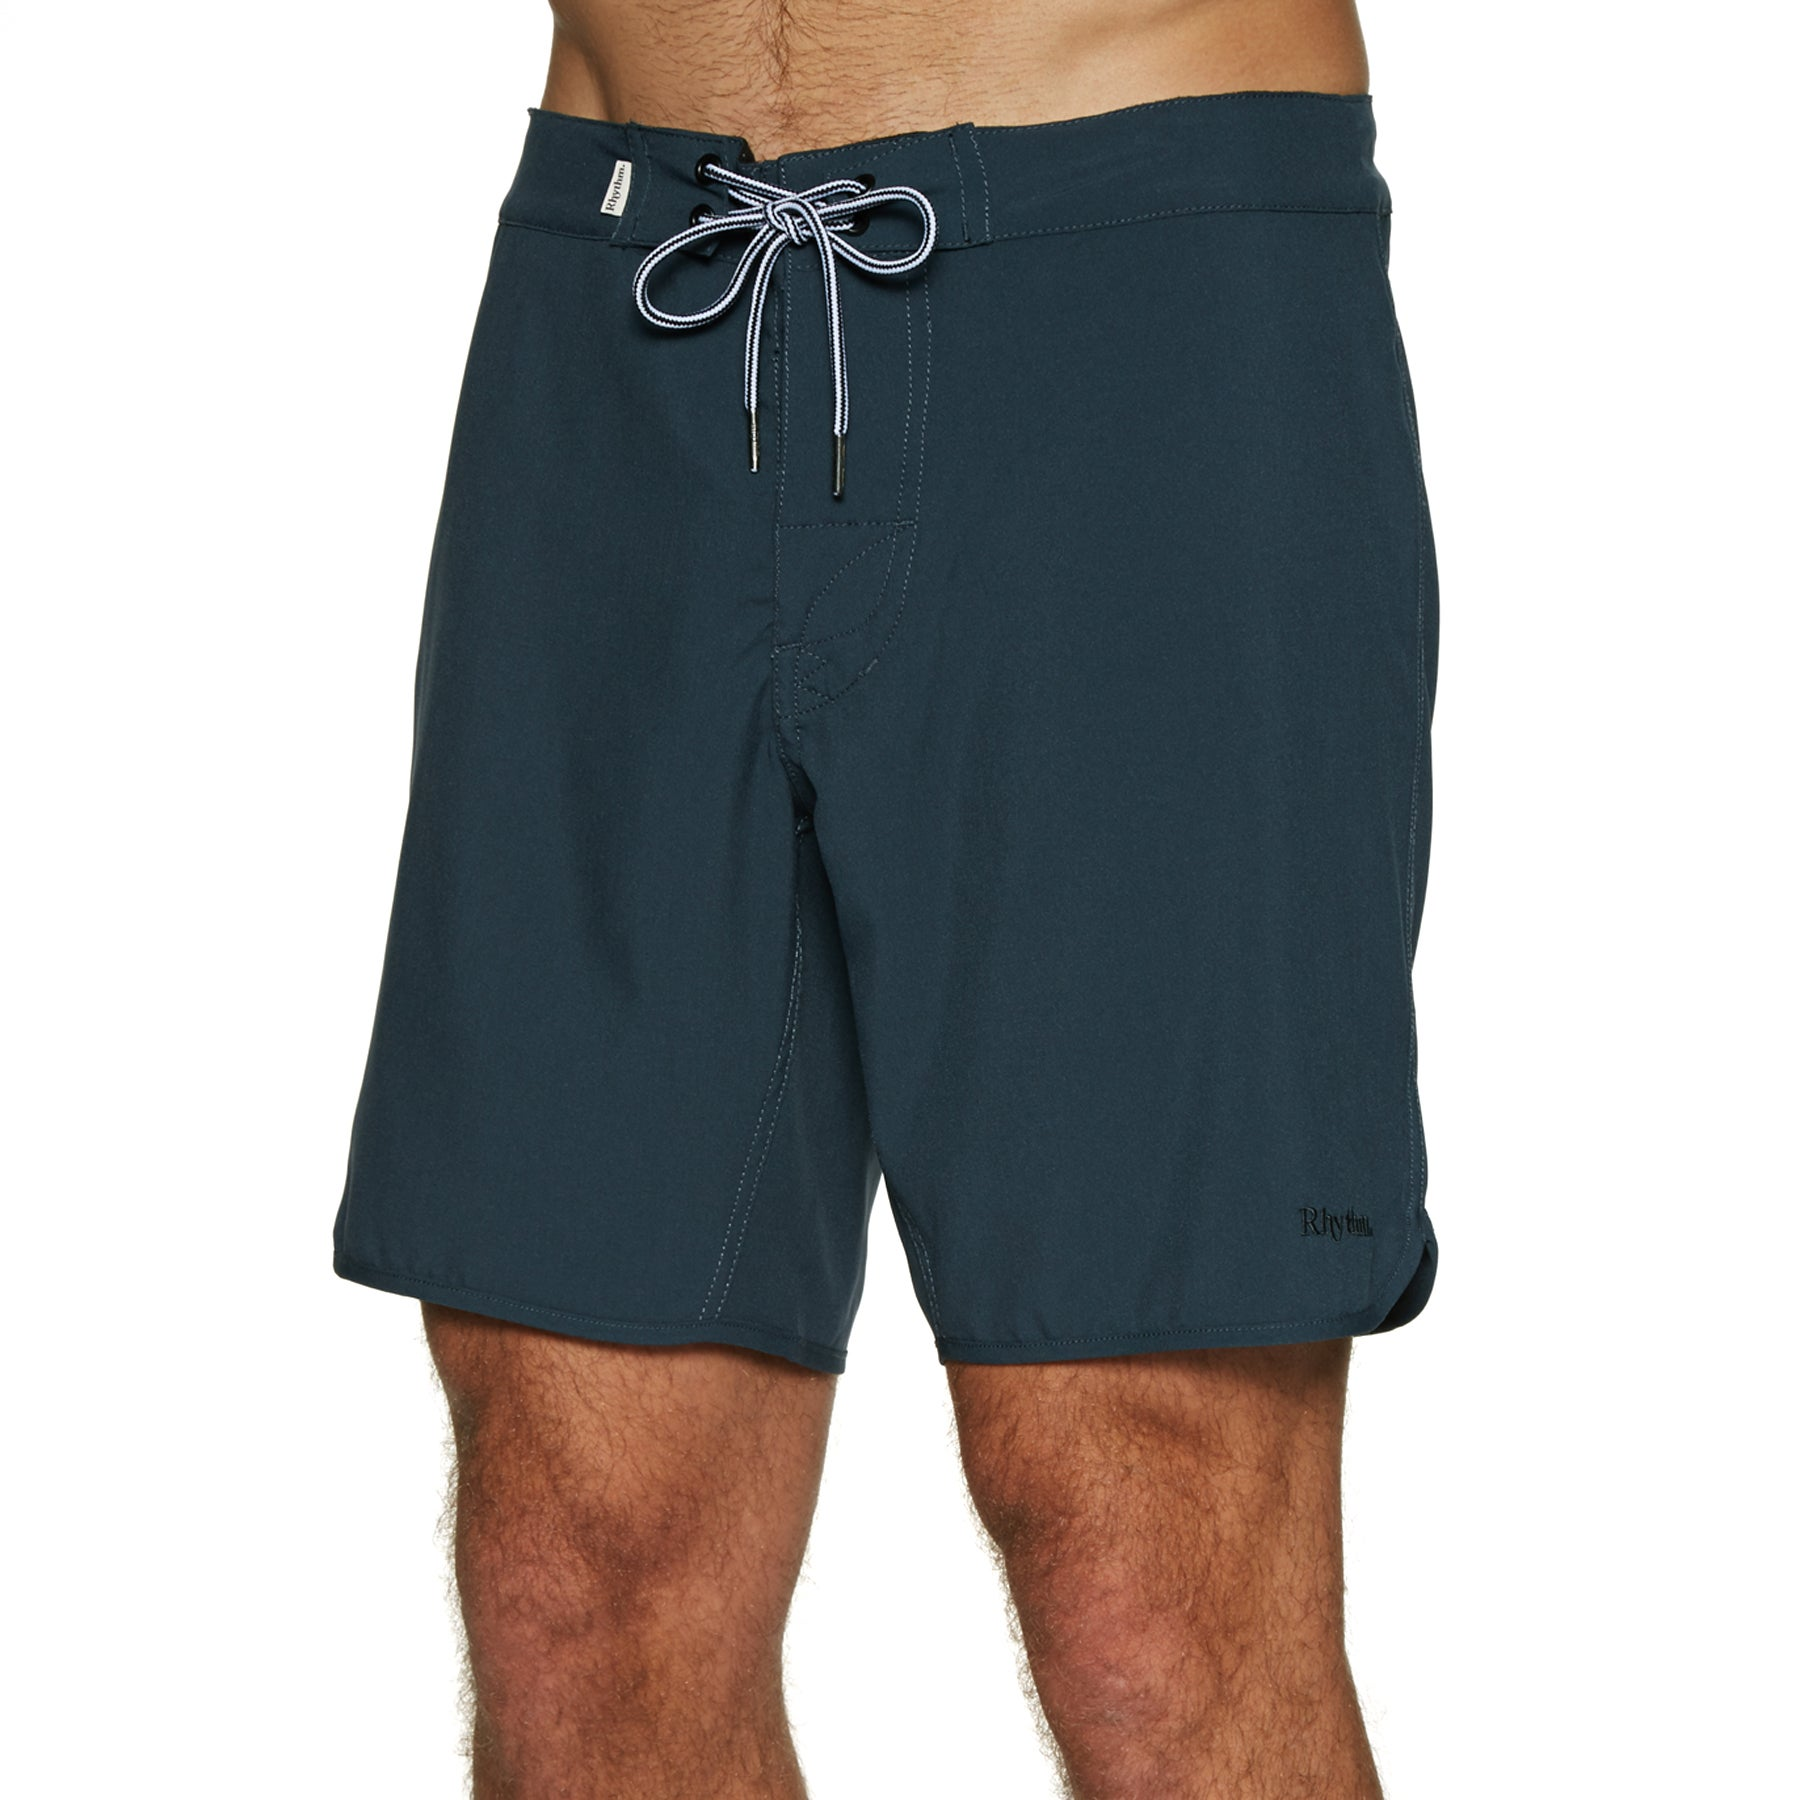 Rhythm Black Label Retro Trunk Boardshorts